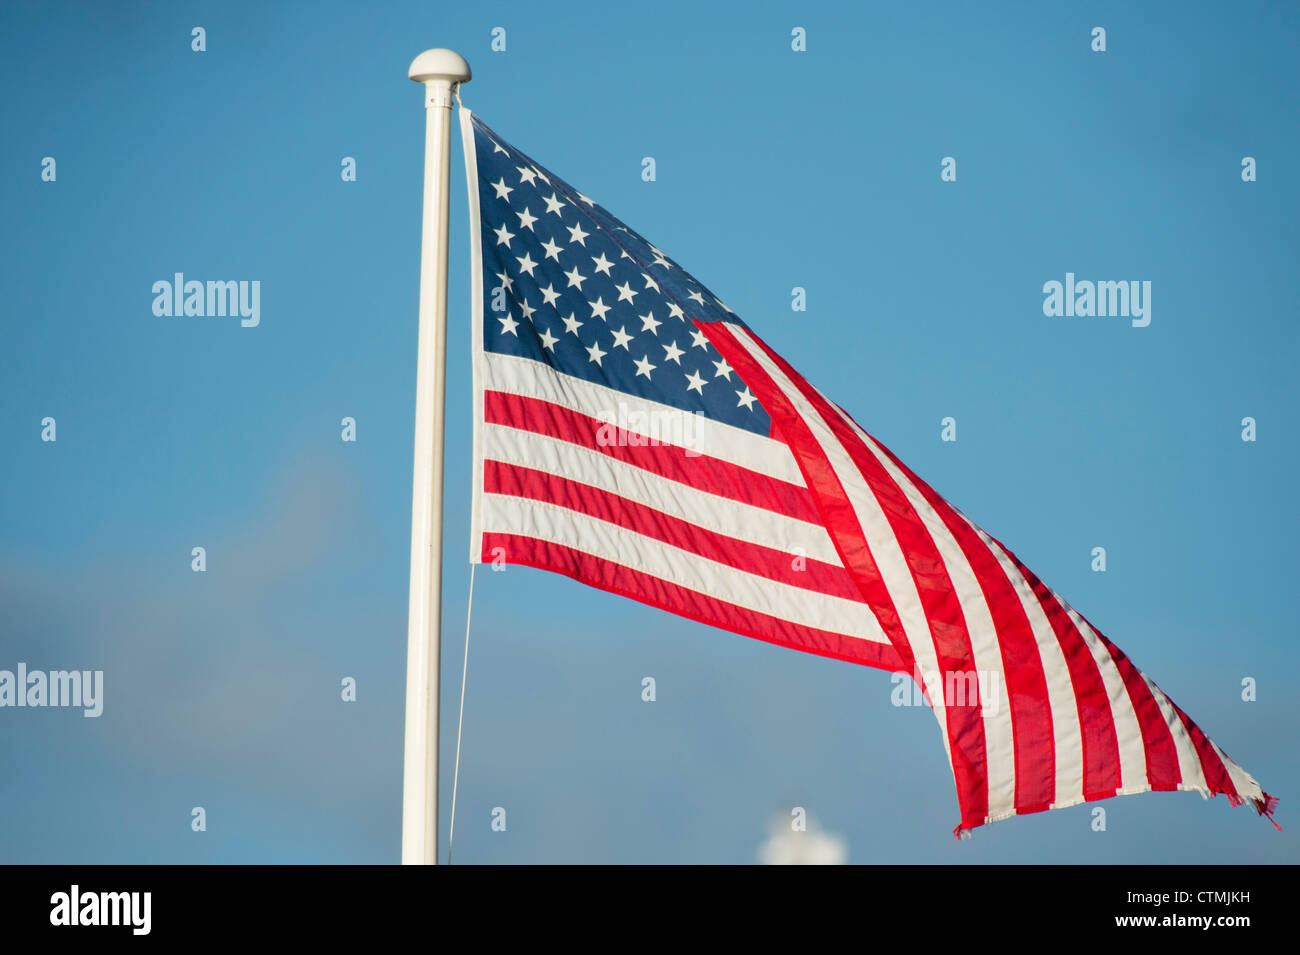 The stars and stripes flag banner old glory USA america american - Stock Image